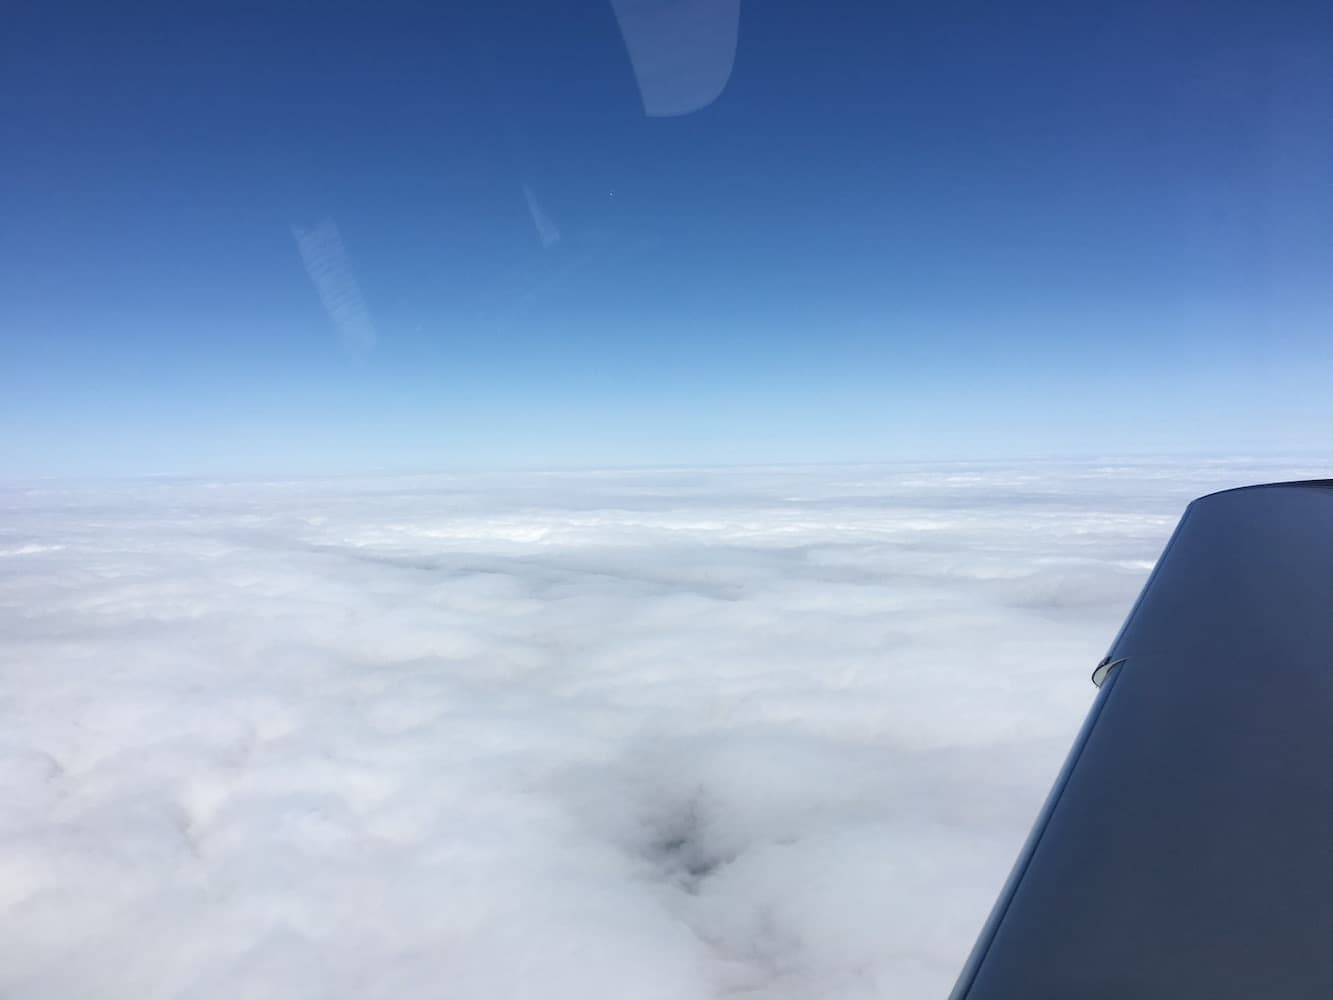 C – 11,000 clear with 30 knot headwinds